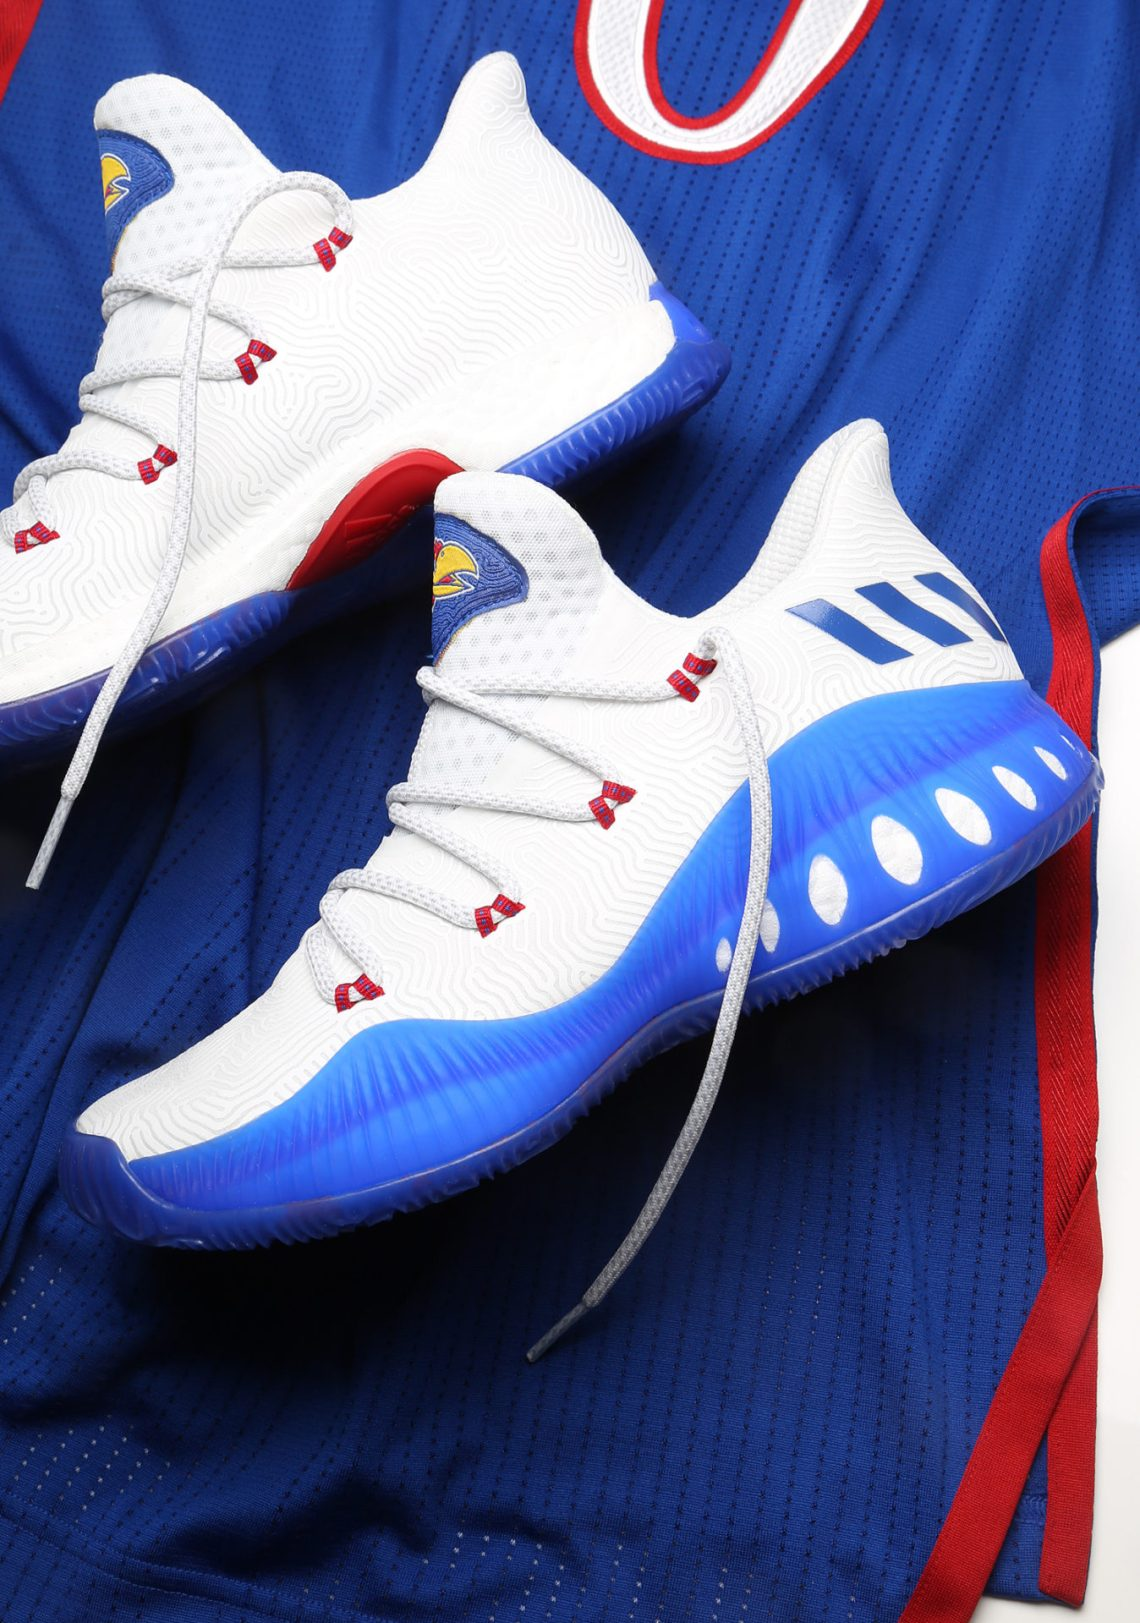 super popular 55366 5d9c5 Check out both adidas Crazy Explosive Low PE options for the Jayhawks  below, and let us know what you think of the latest KU exclusives in the  comments ...